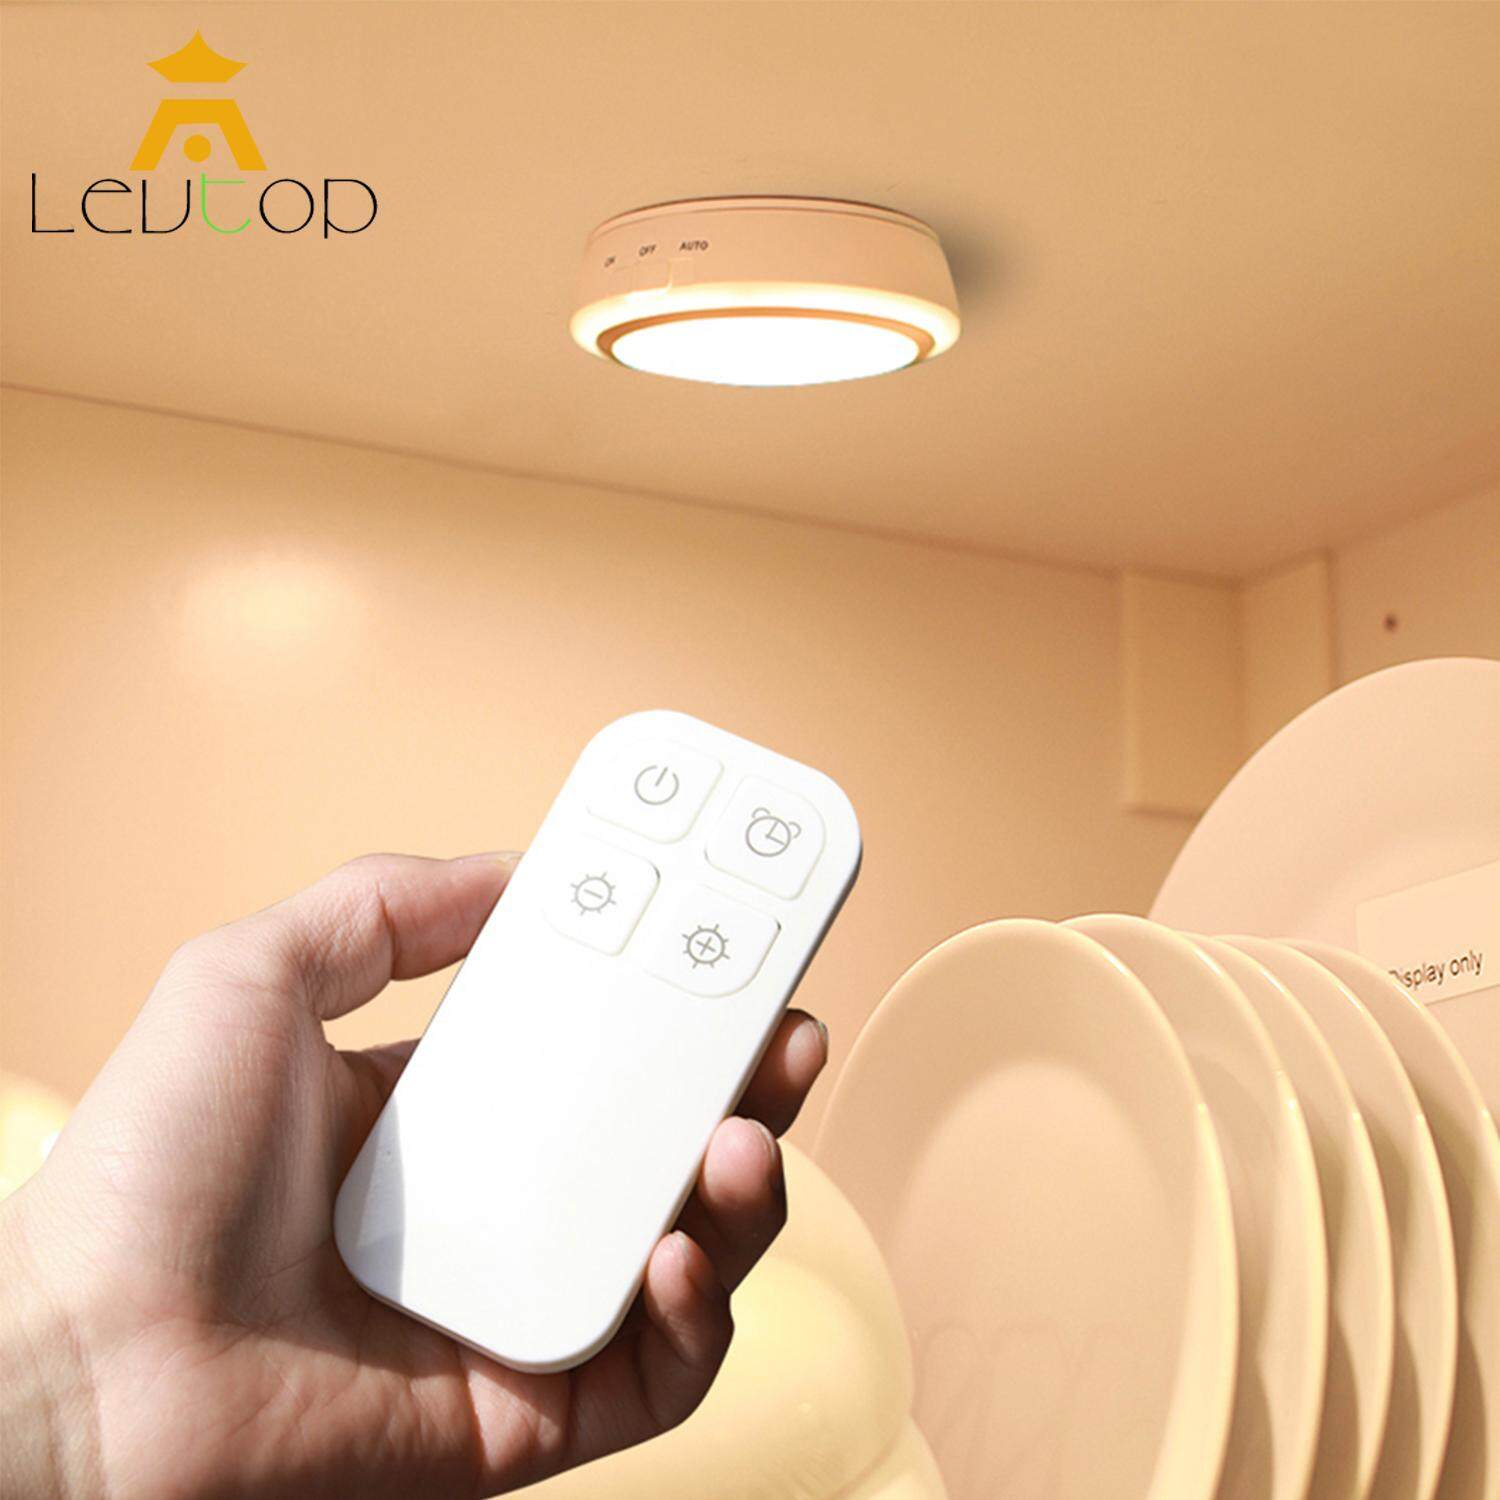 LEVTOP Wireless LED Night Light with Remote Control 5 LED Smart Wall Rechargeable Night Lamp for Lights for Bed Home Office Hallway Cabinet Closet Stairs Bedroom Nursery Stair